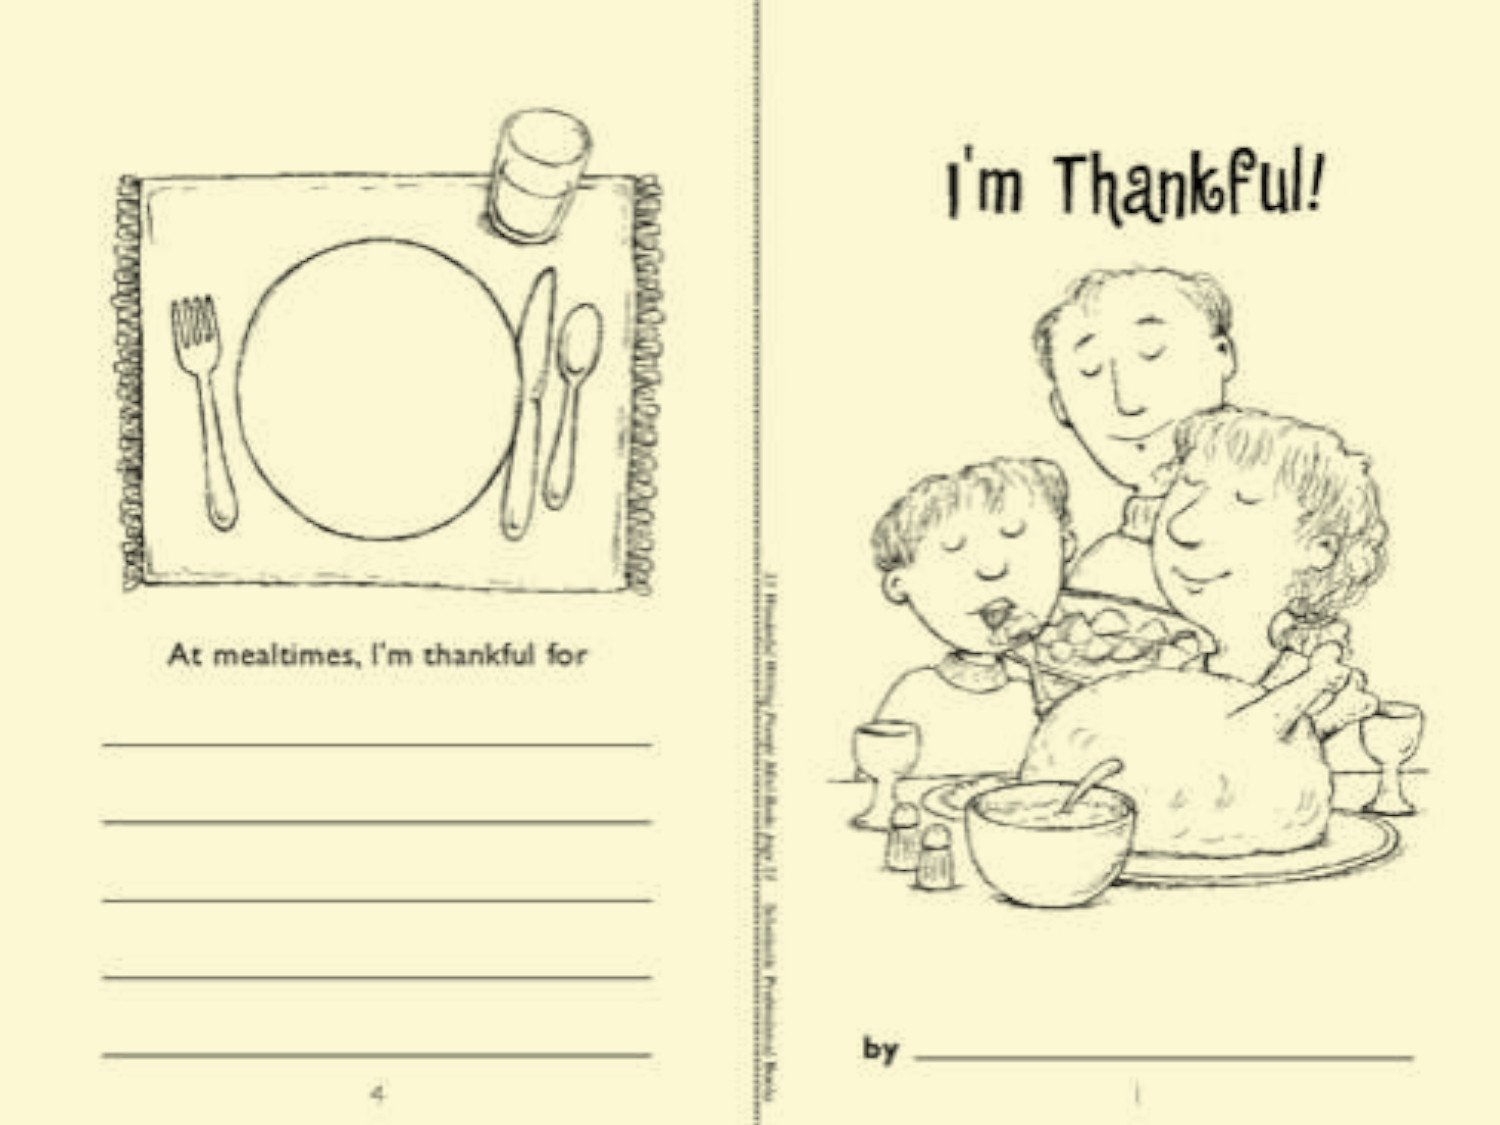 I Am Thankful for Worksheet Minibook I M Thankful